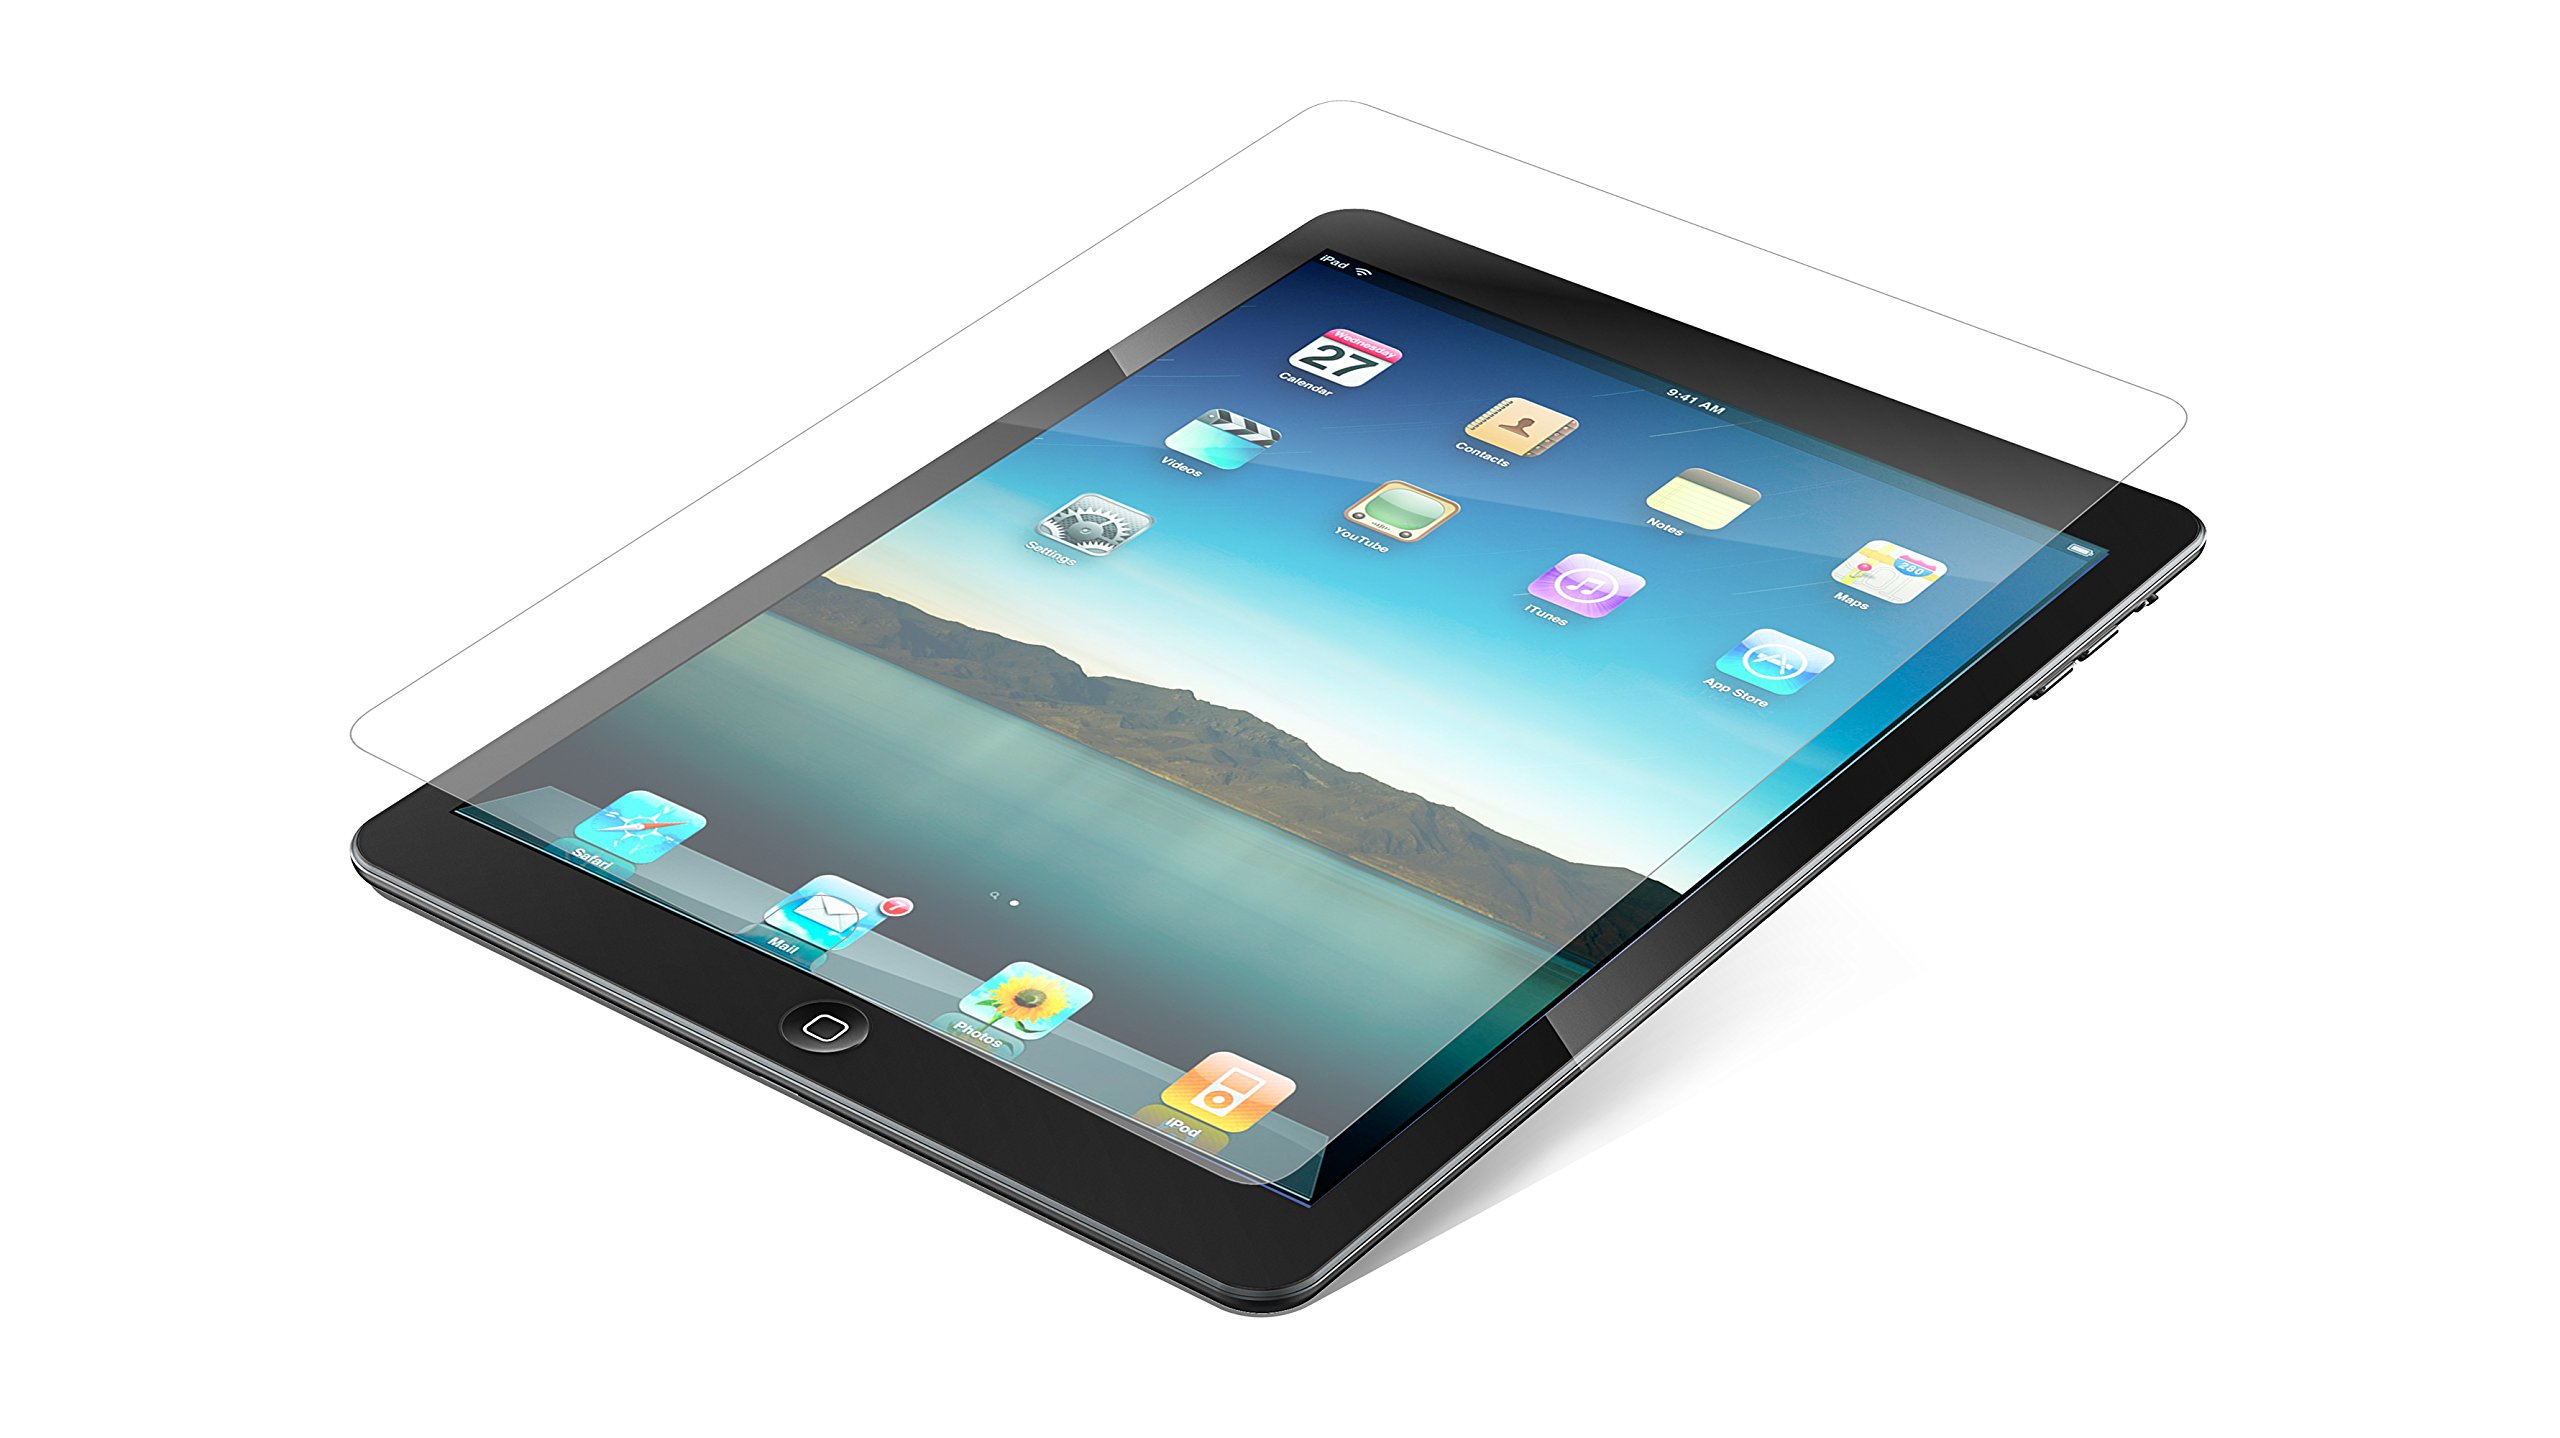 ZAGG InvisibleShield Glass Screen Protector for Apple iPad 2, iPad 3rd Generation and iPad with Retina - Clear